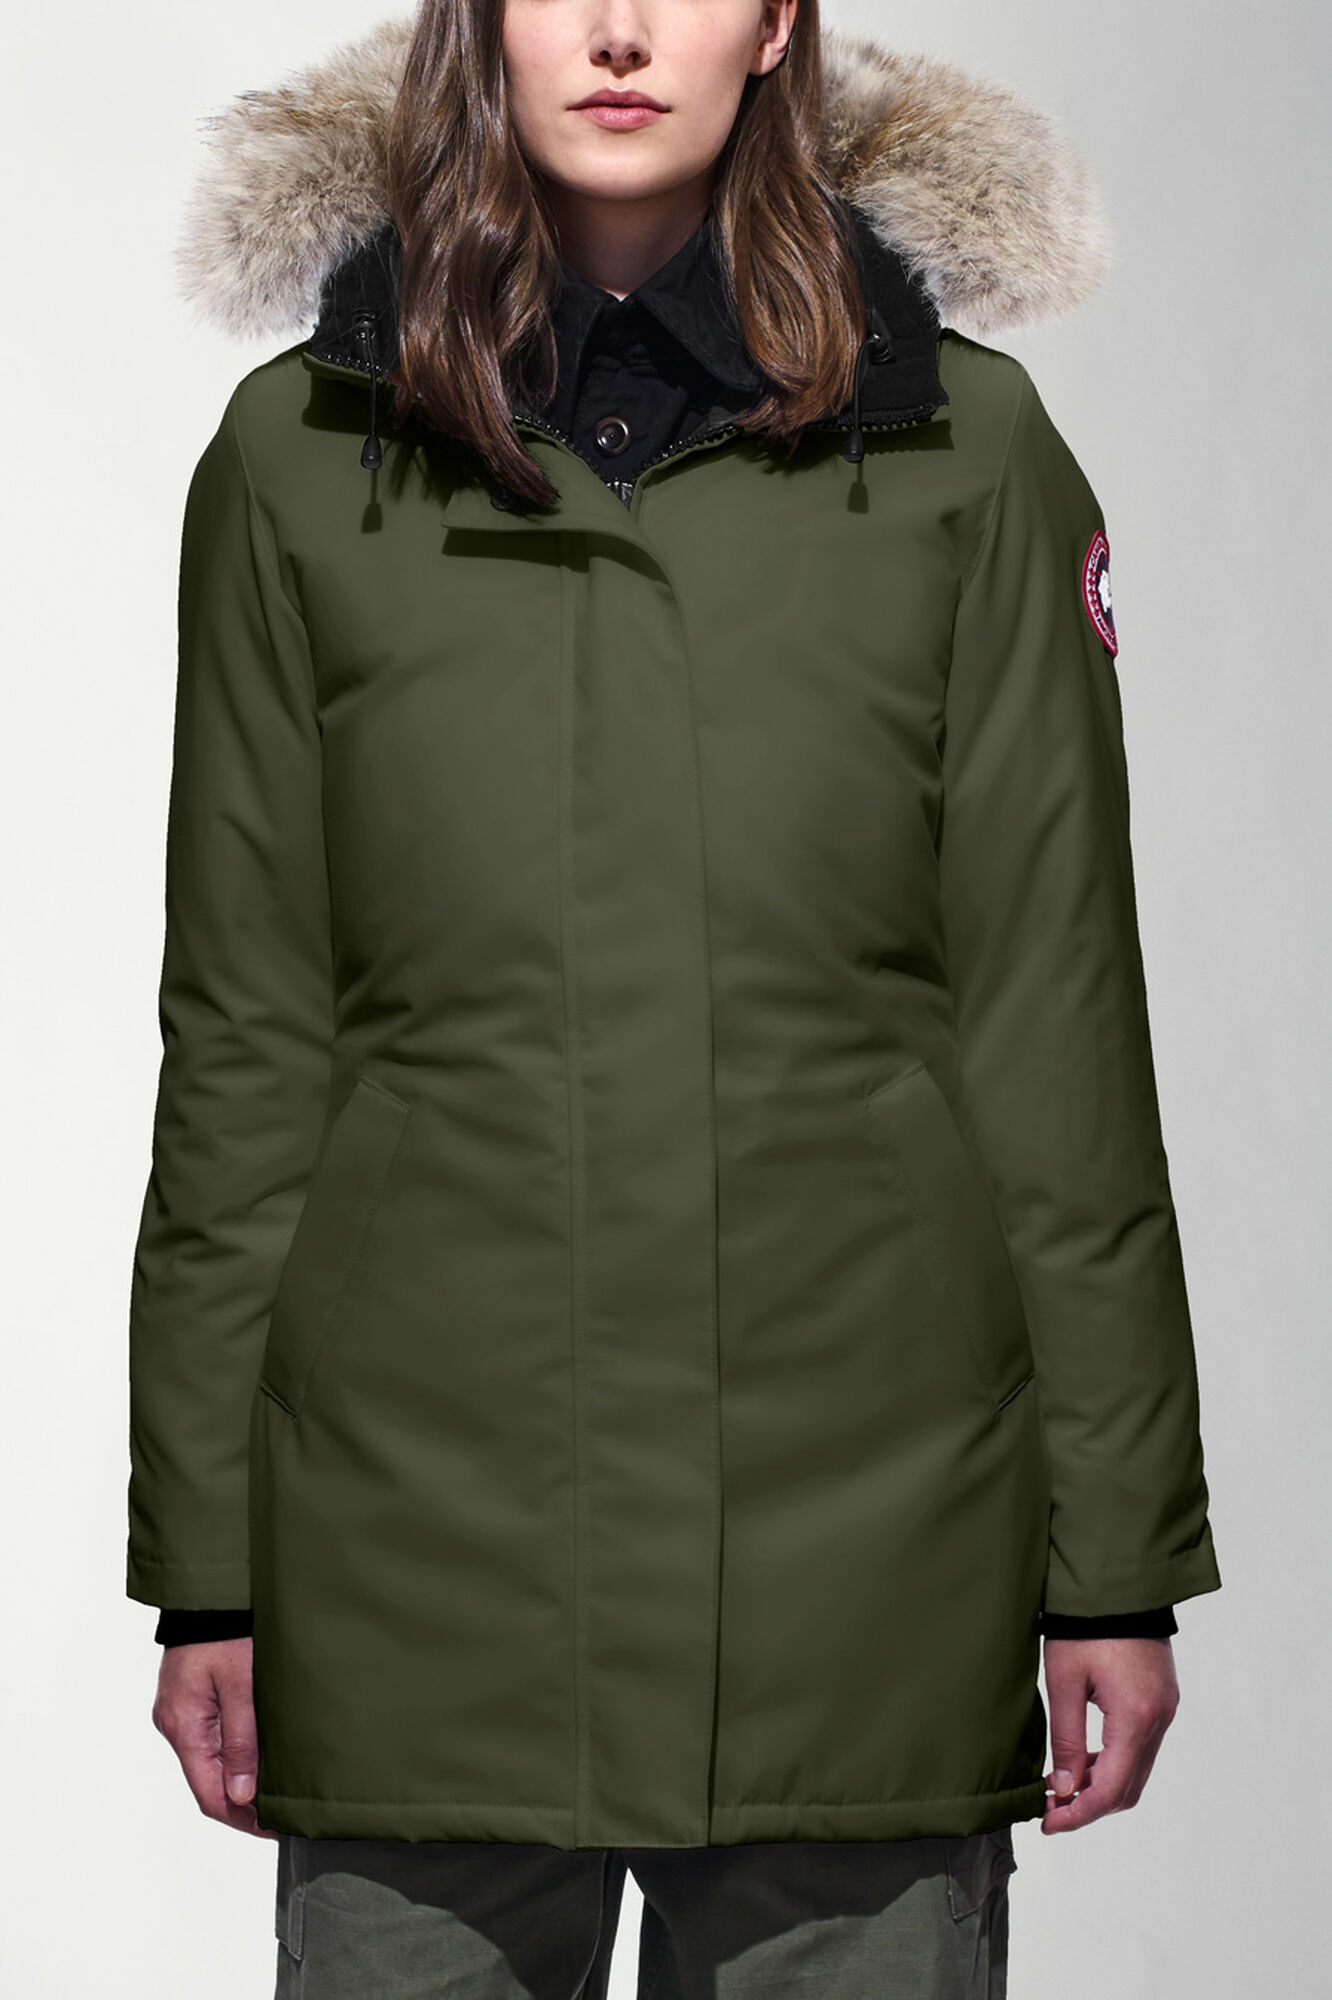 Canada Goose kensington parka outlet authentic - Mystique Parka | Canada Goose?